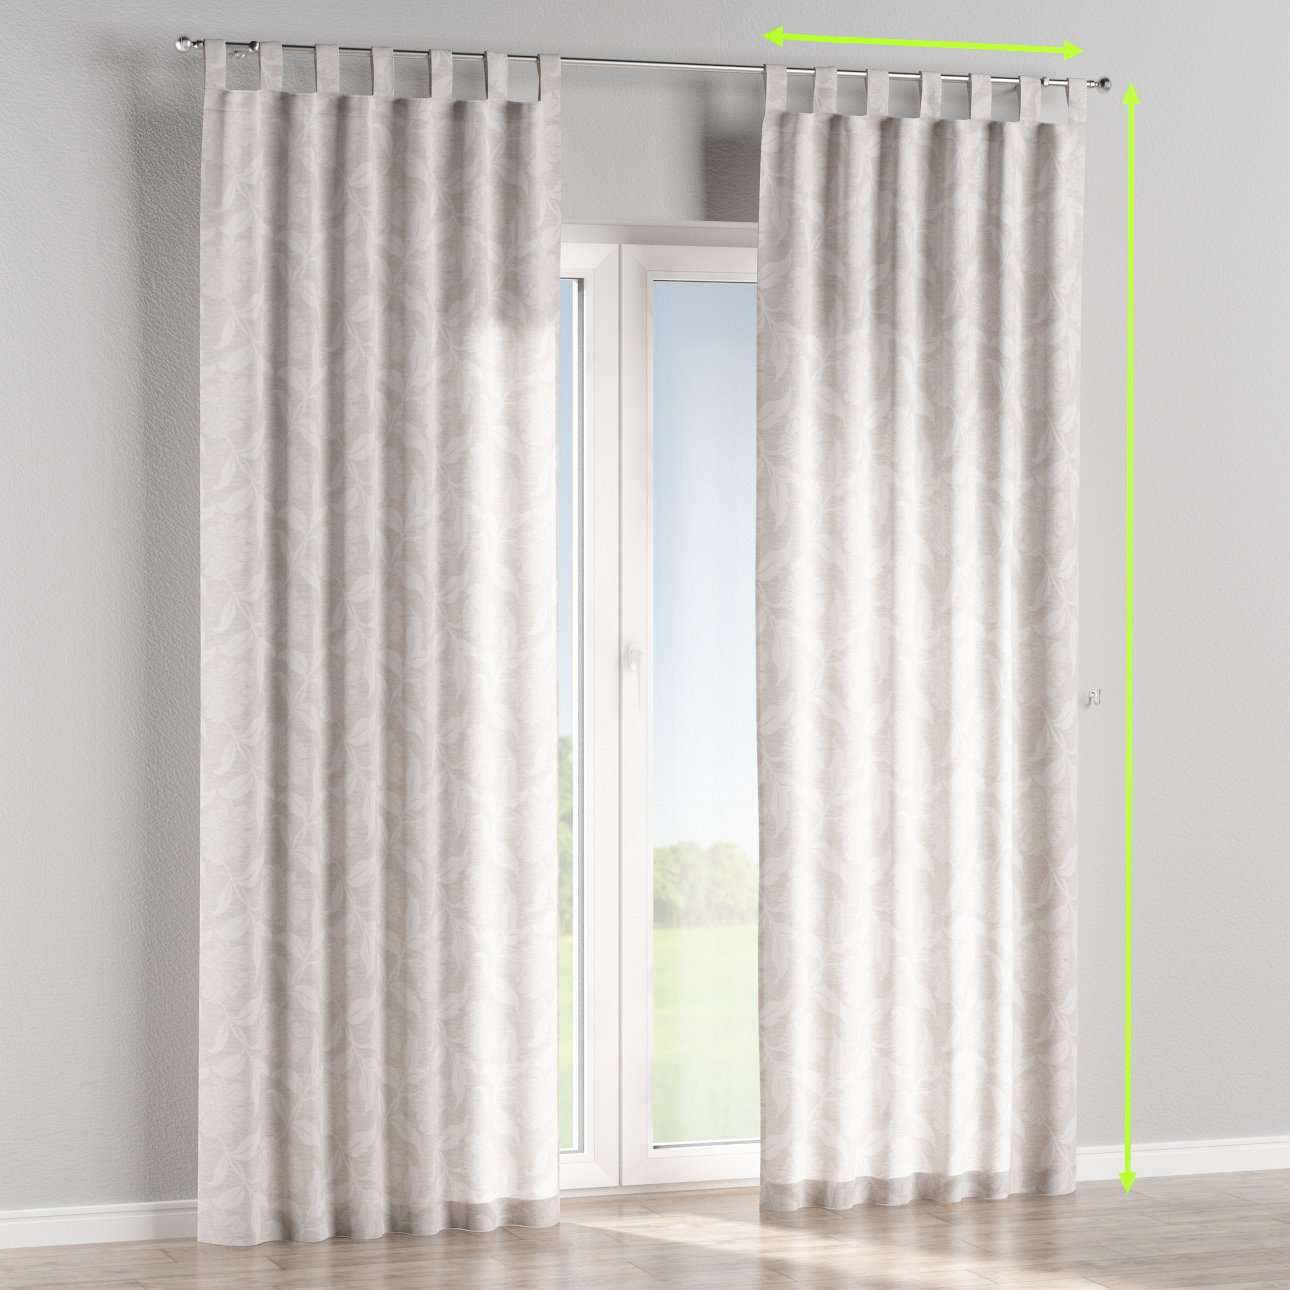 Tab top lined curtains in collection Venice, fabric: 140-51